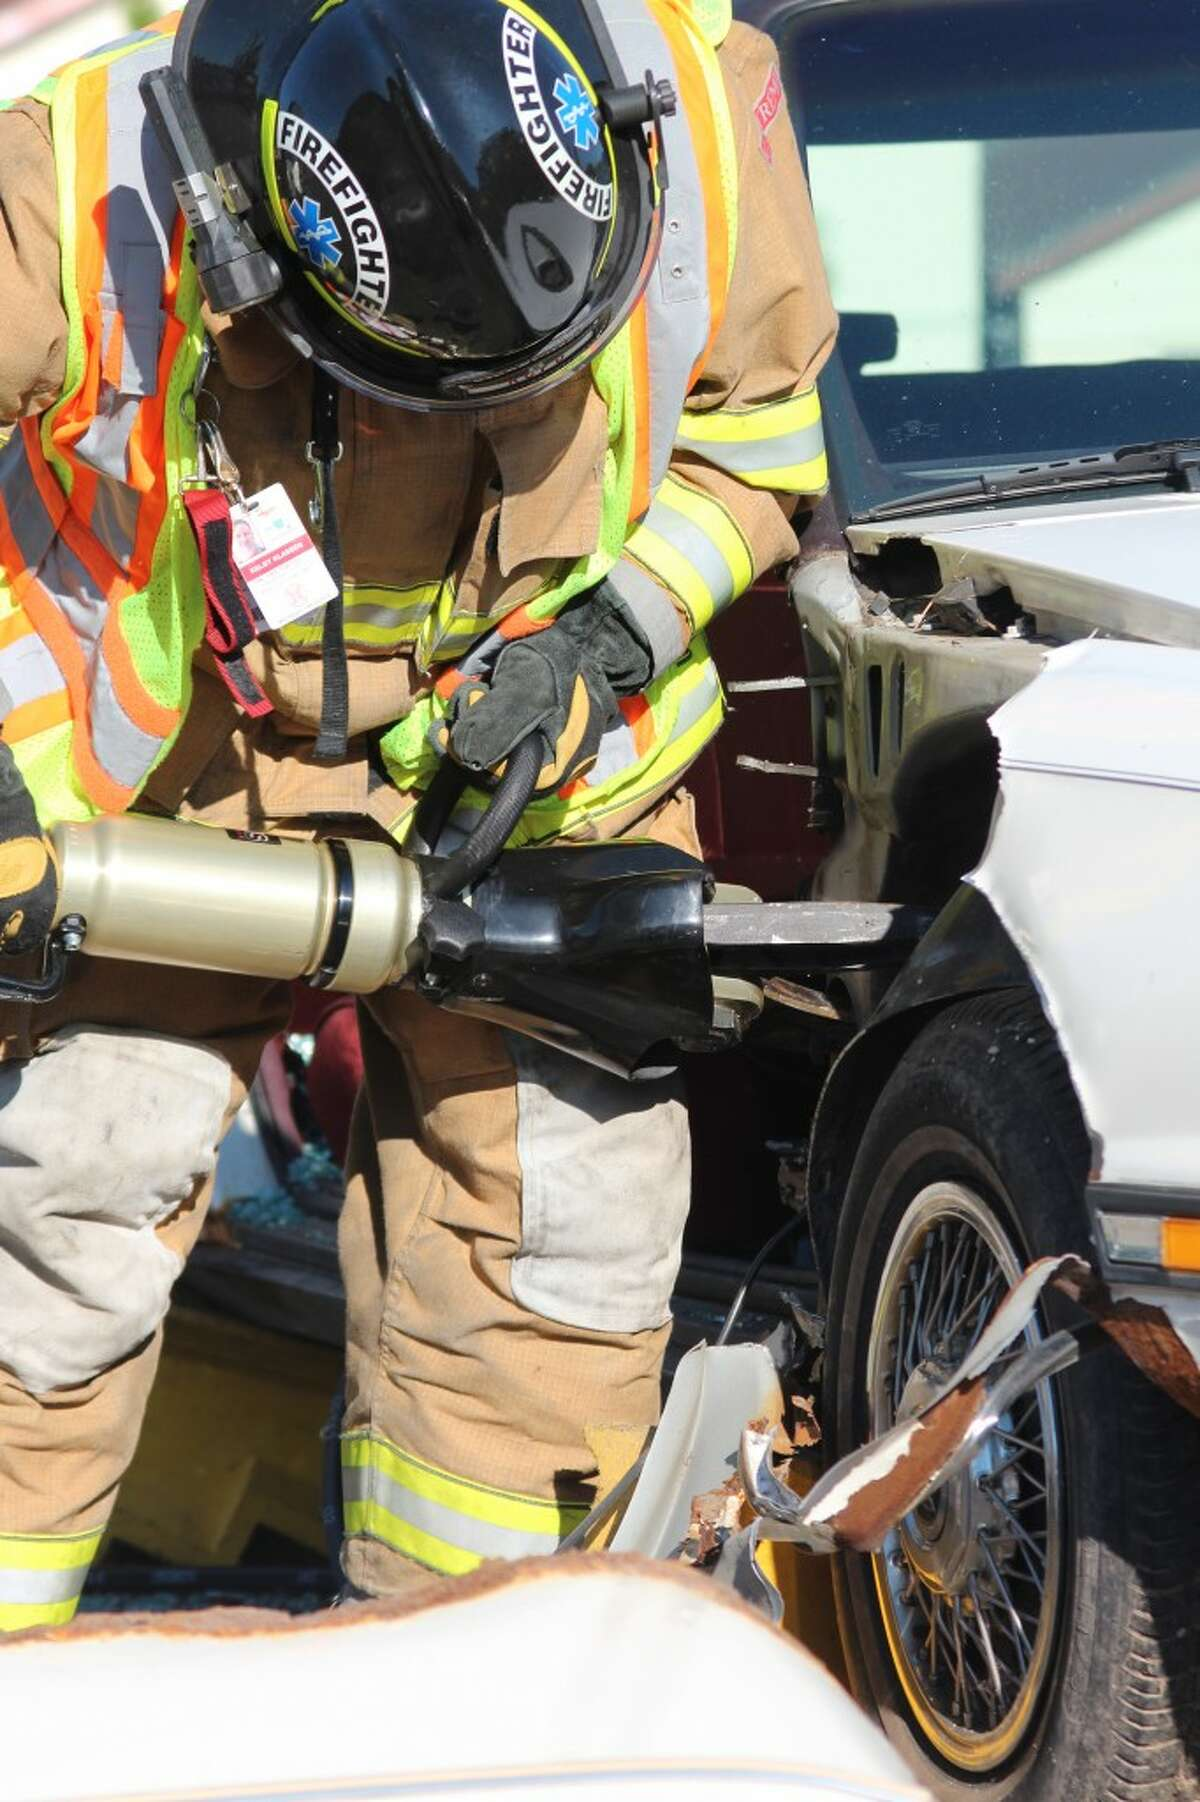 CLEAN CUT: Firefighters from the Reed City Fire Department uses a new hydraulic rescue tool to cut through a donated demo car during a practice exercise Tuesday. The new tools were purchased with a $16,000 AAA grant. (Herald Review photo/Sarah Neubecker)